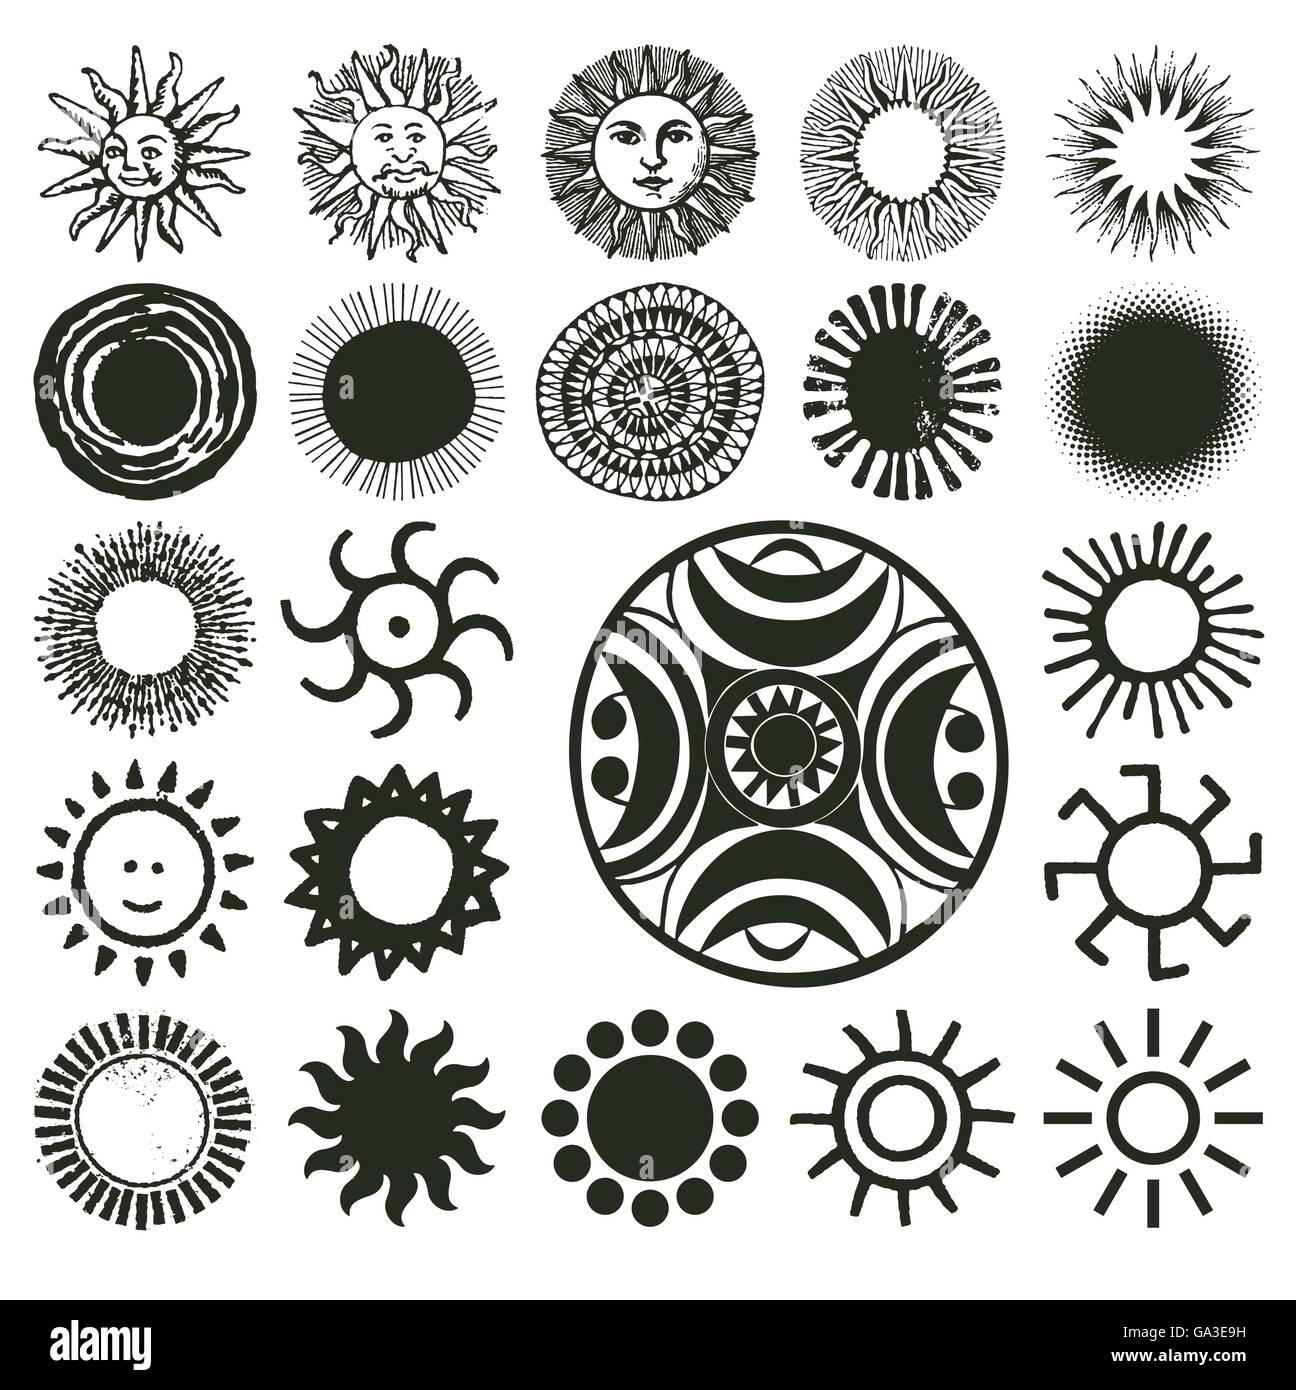 Ancient, old, traditional and modern sun symbols - Stock Image